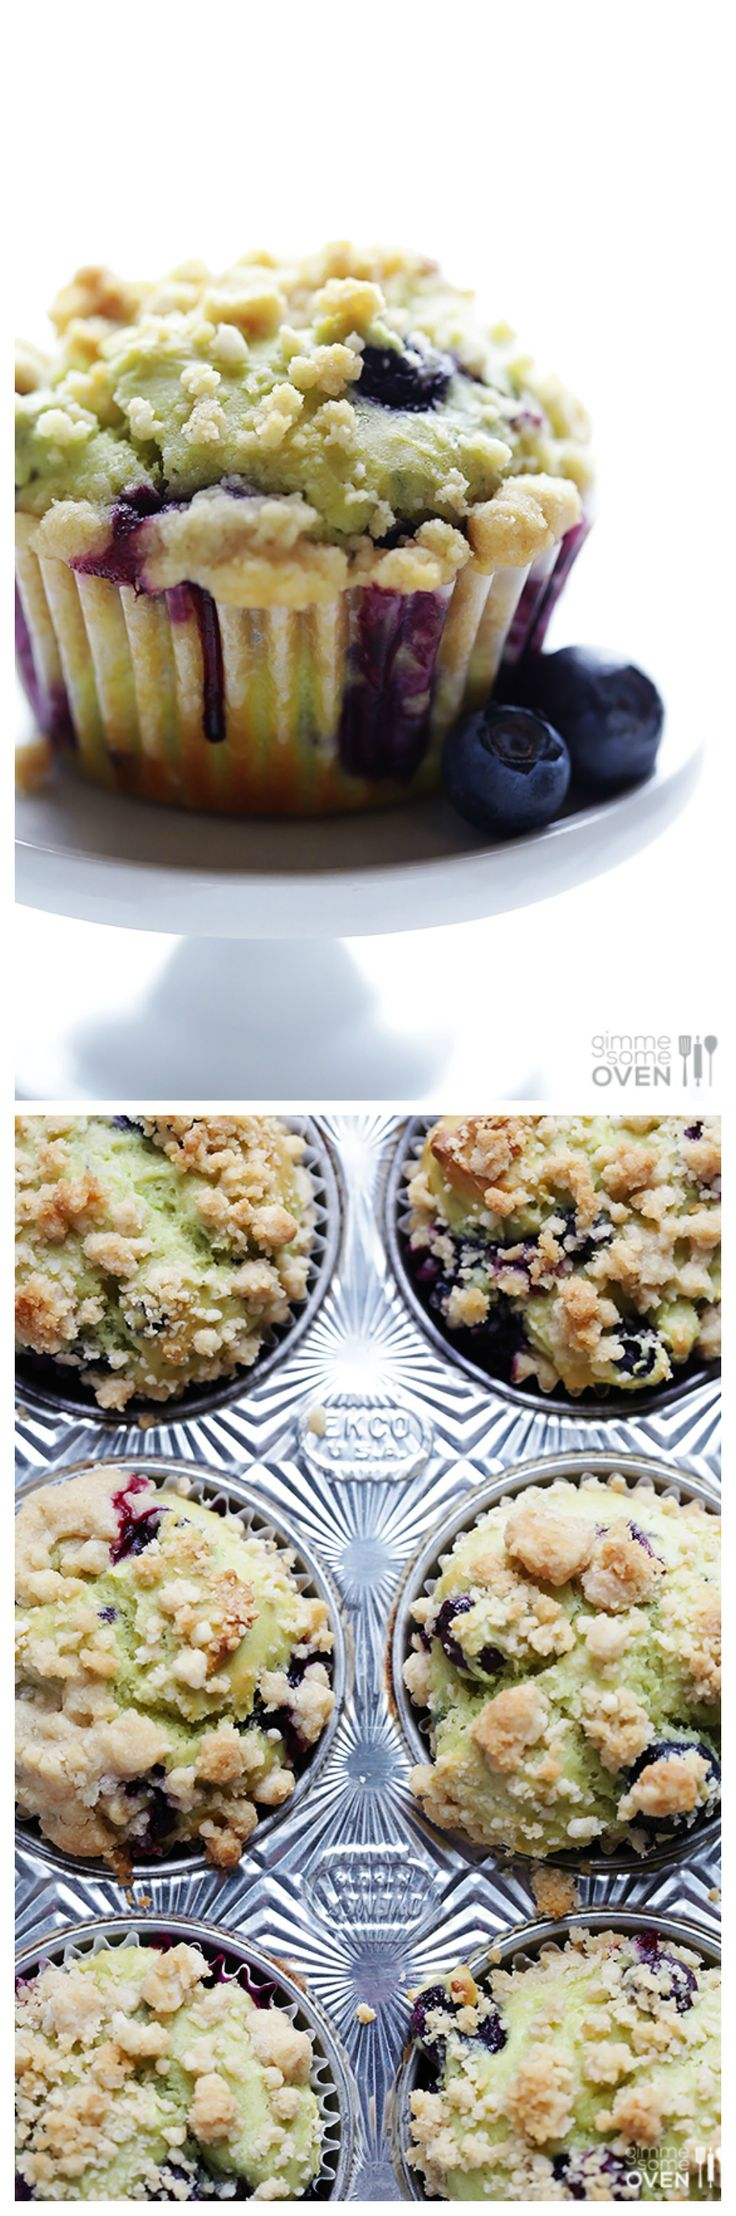 Blueberry Avocado Muffins -- healthier, simple to make, and absolutely delicious!   gimmesomeoven.com